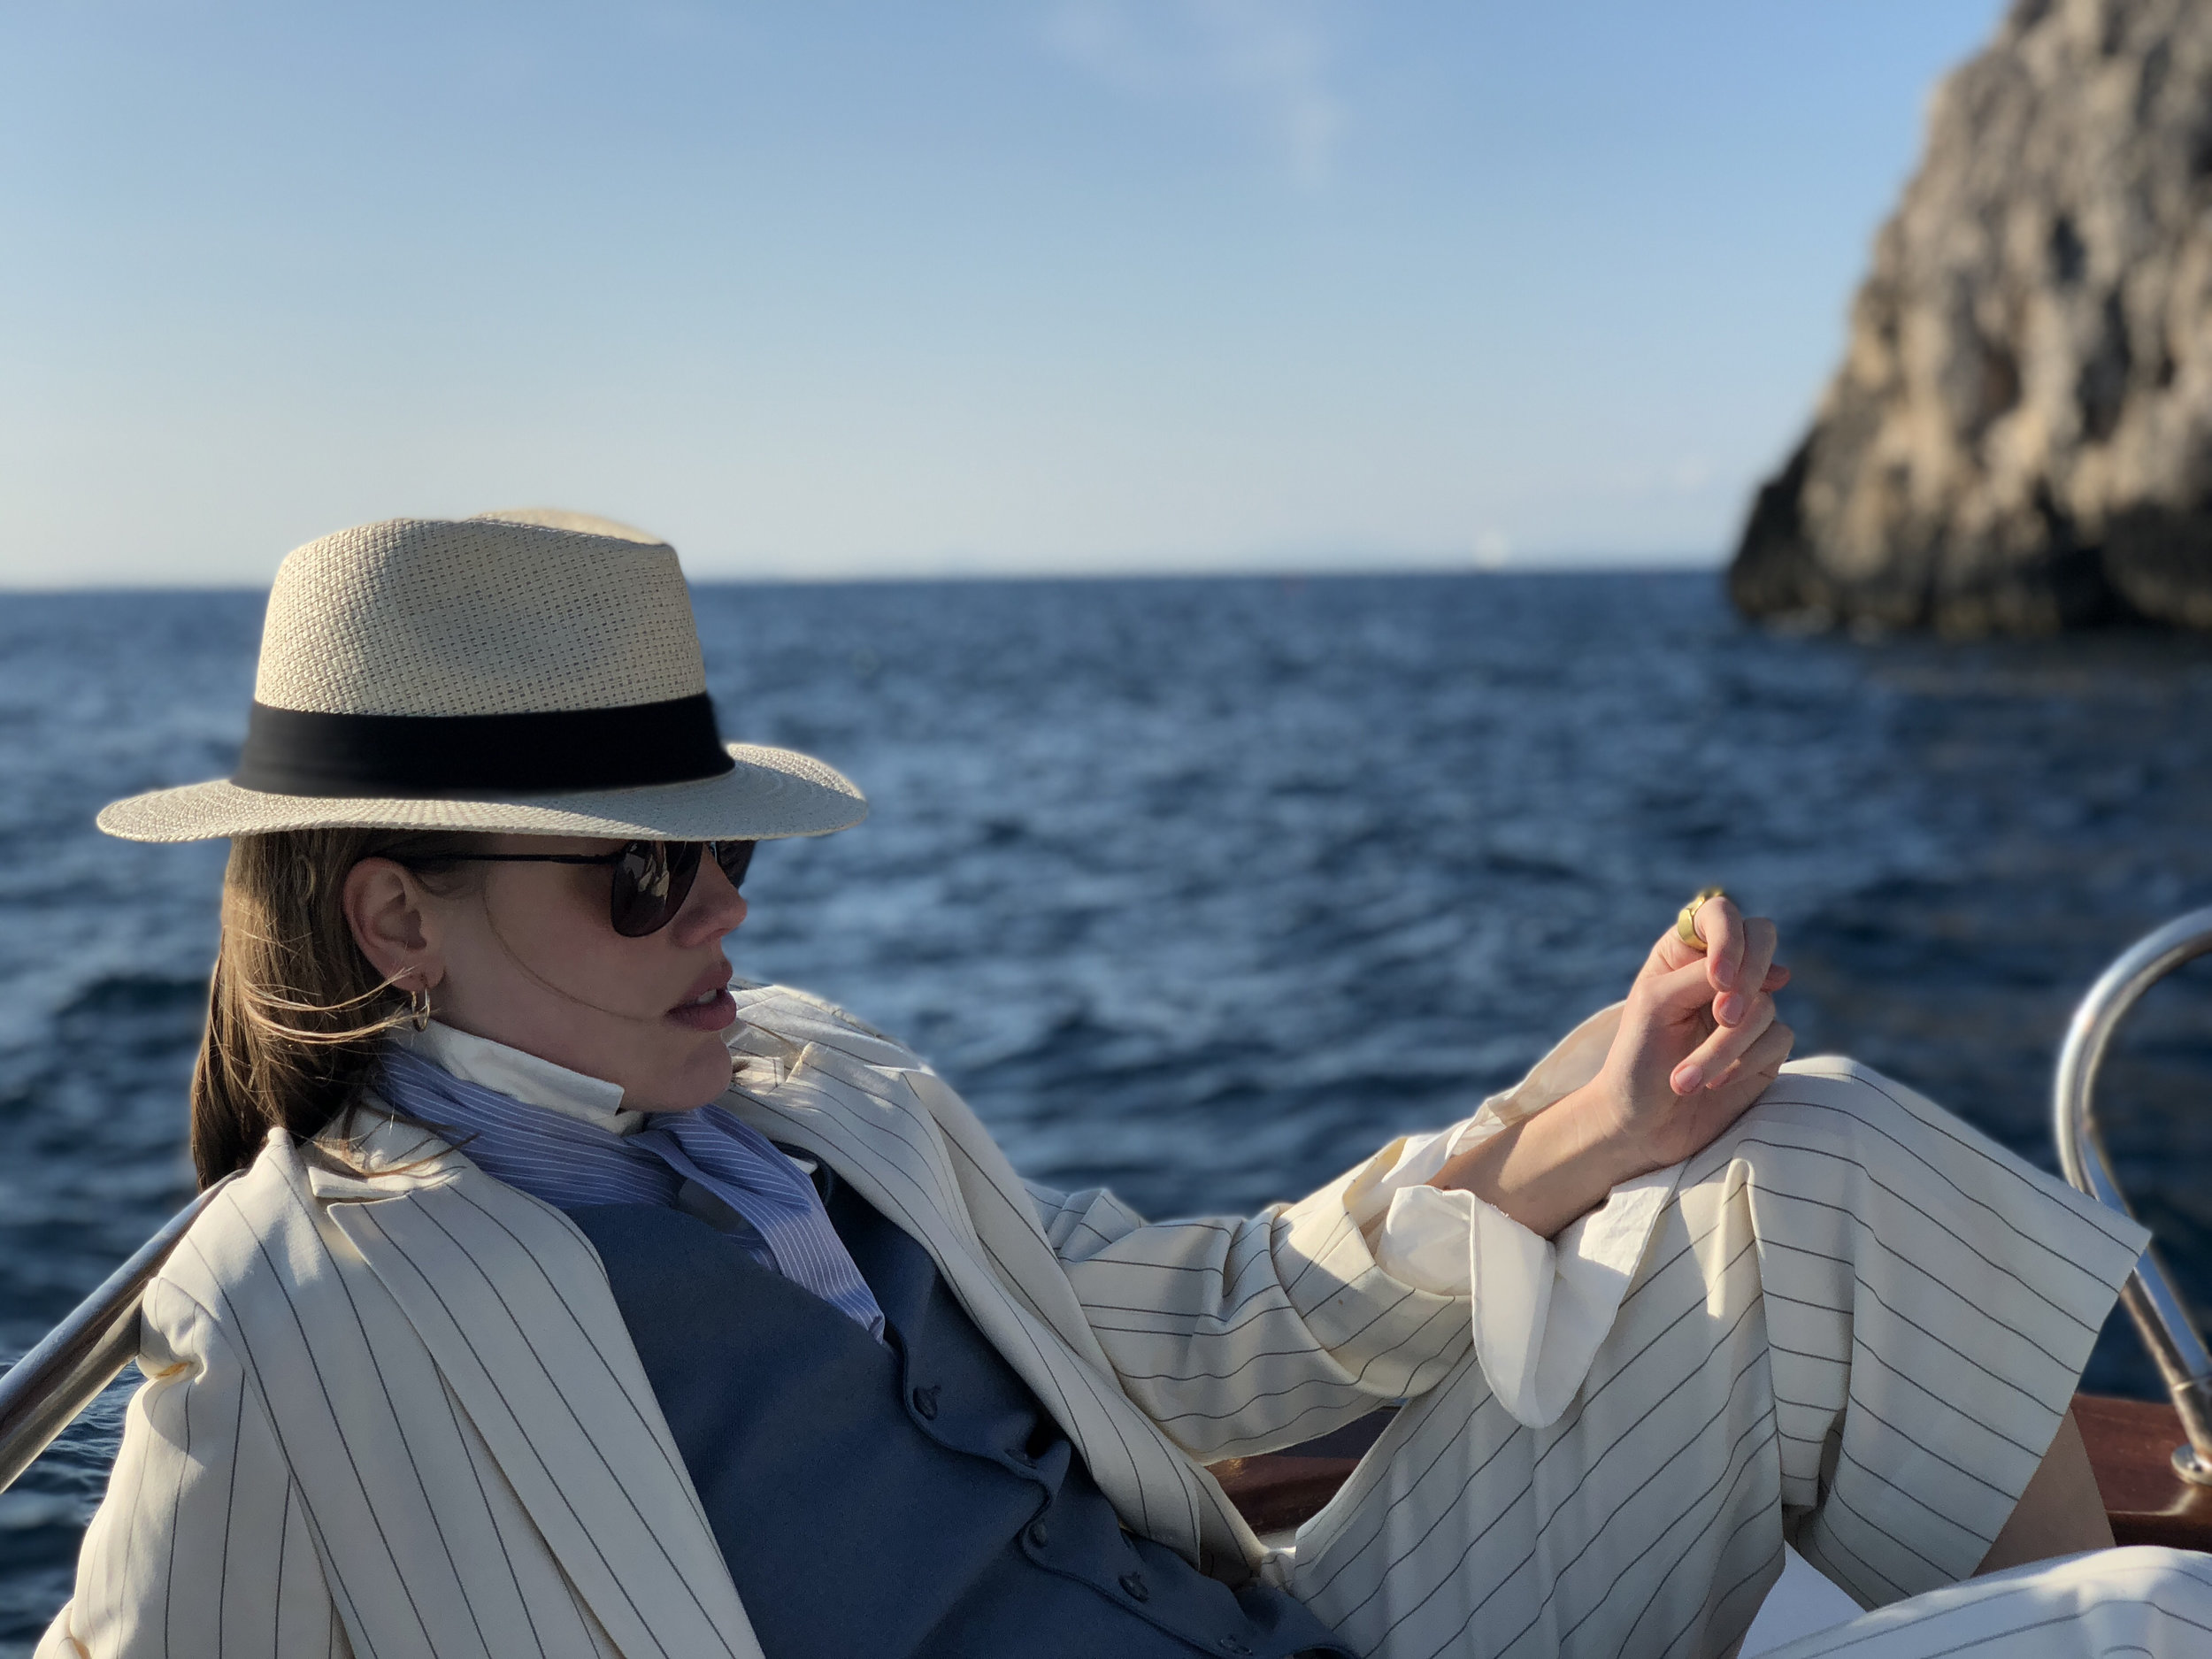 Death in Venice  from  #sickinexile